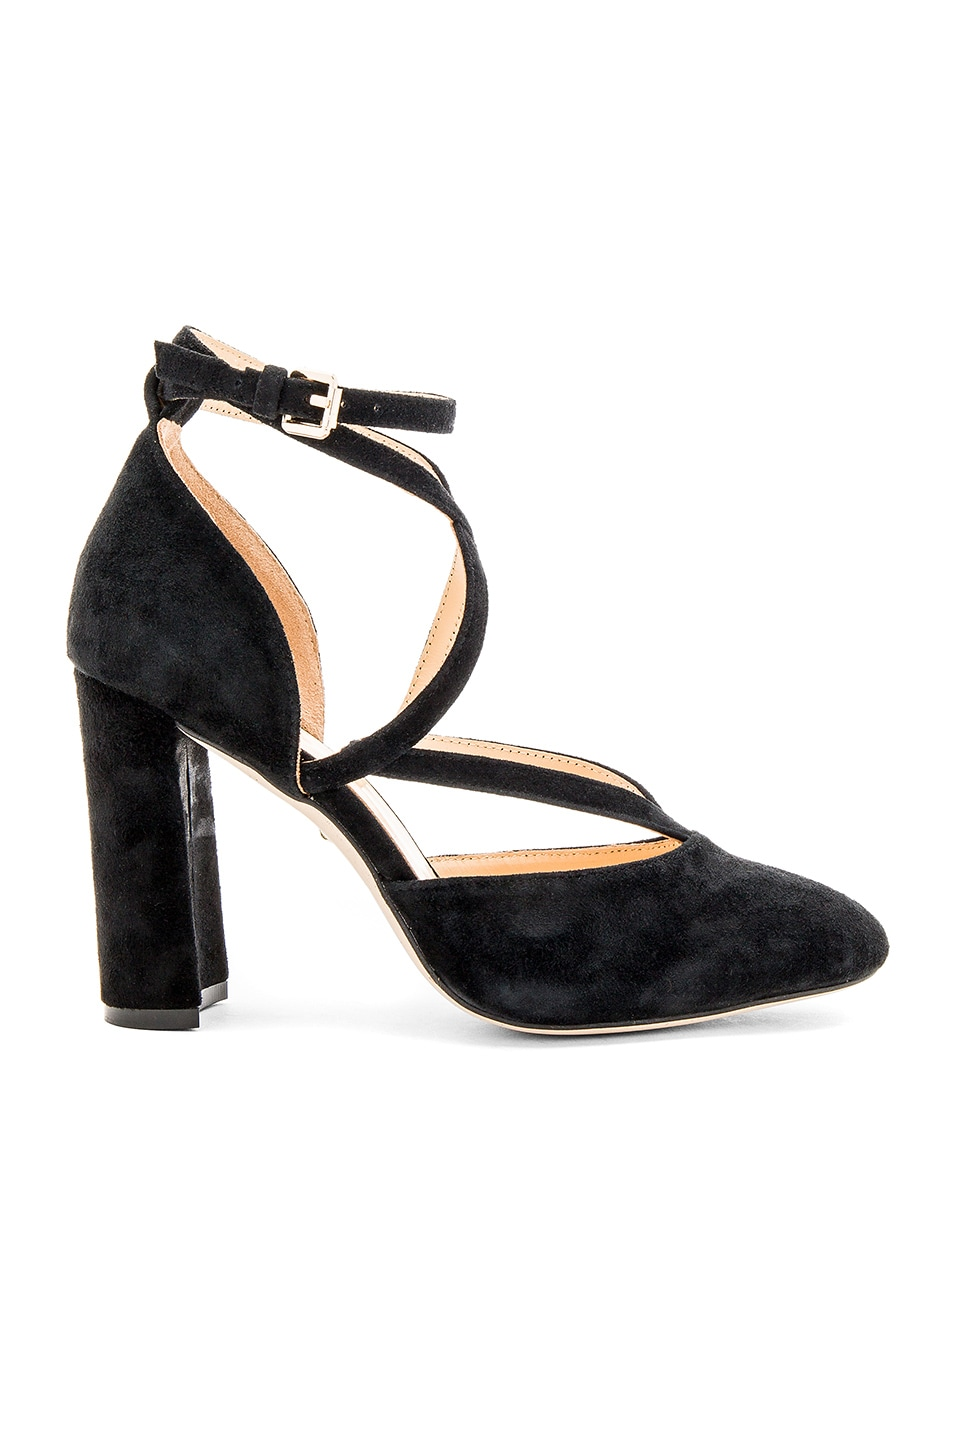 RAYE Isla Pump in Black